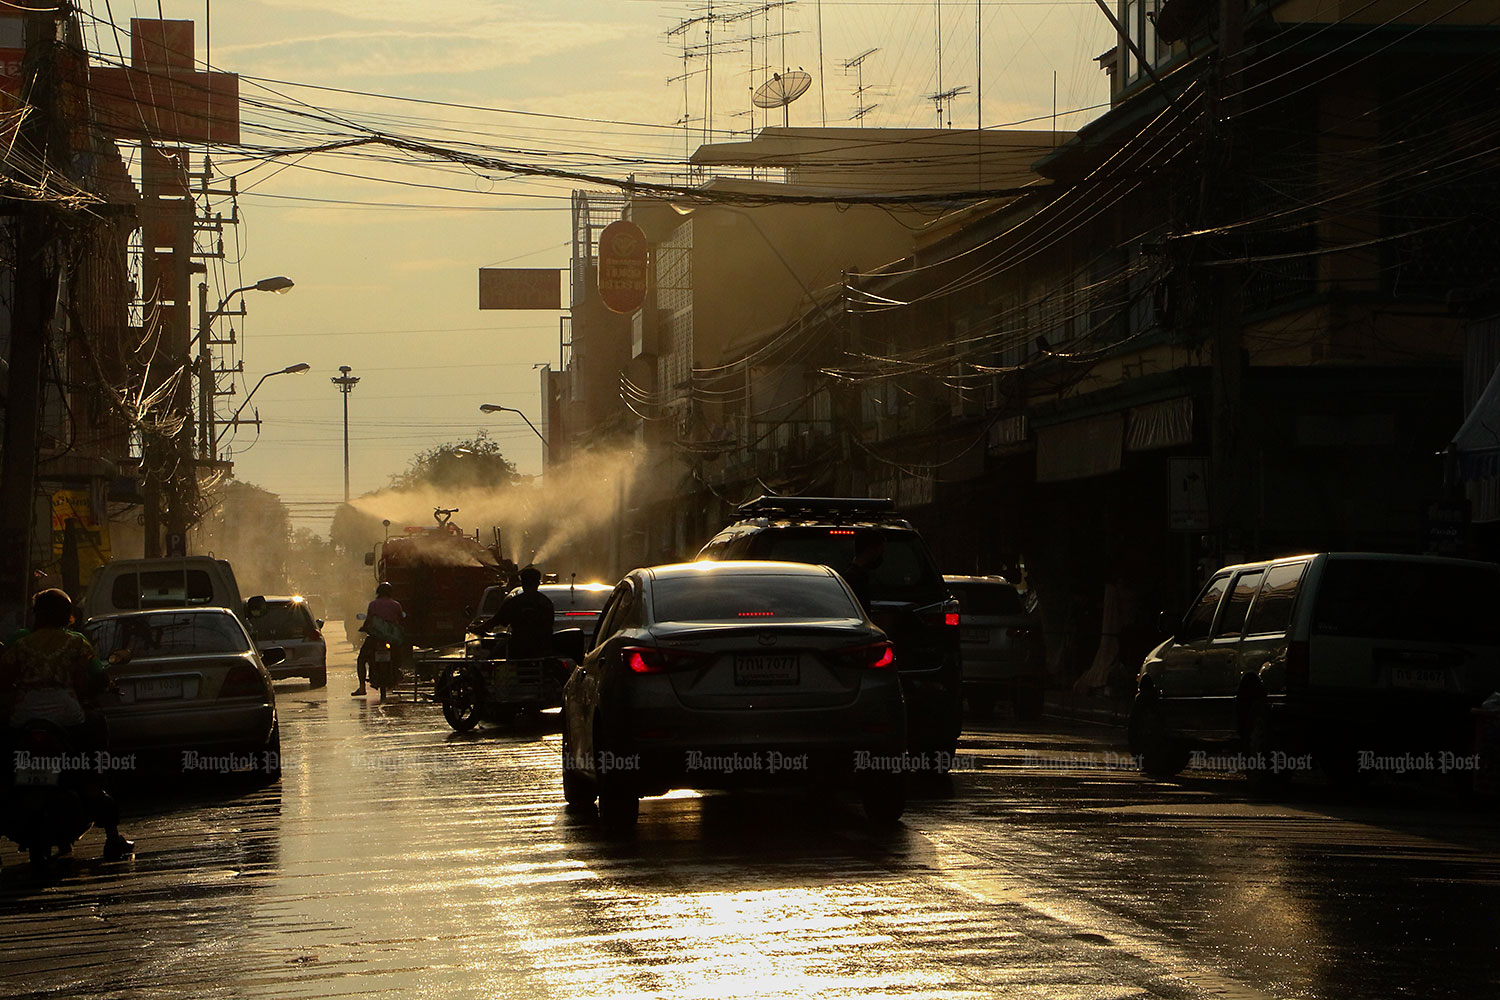 A truck sprays disinfectant on to the streets in Ratchaburi's Muang district on Thursday after a spike in Covid-19 cases. Several of those infected were found to have taken part in social activities. (Photo by Saichon Srinuanjan)